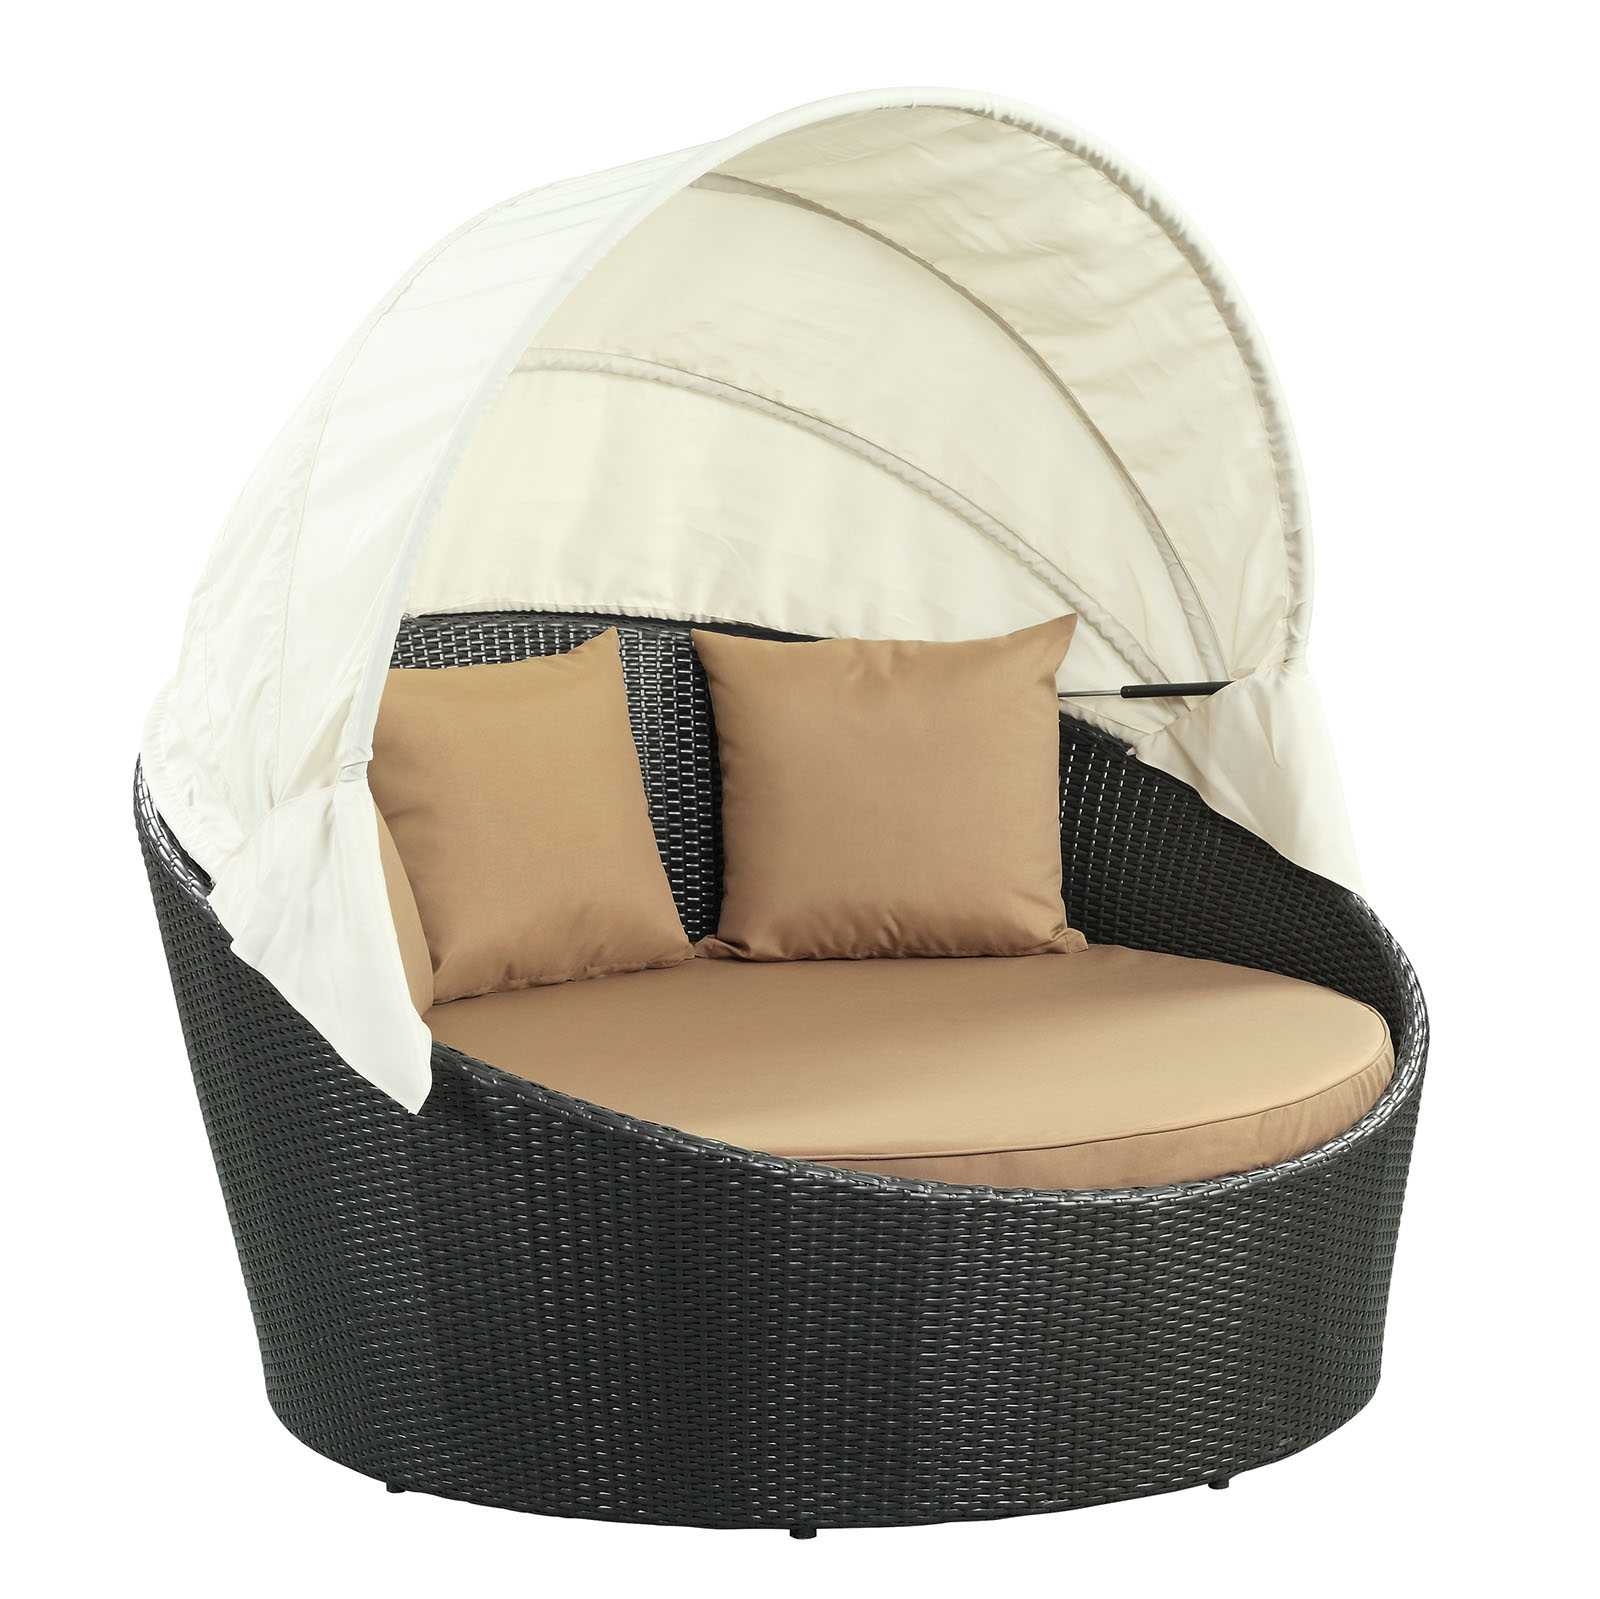 Siesta Canopy Outdoor Patio Daybed   Walmart.com